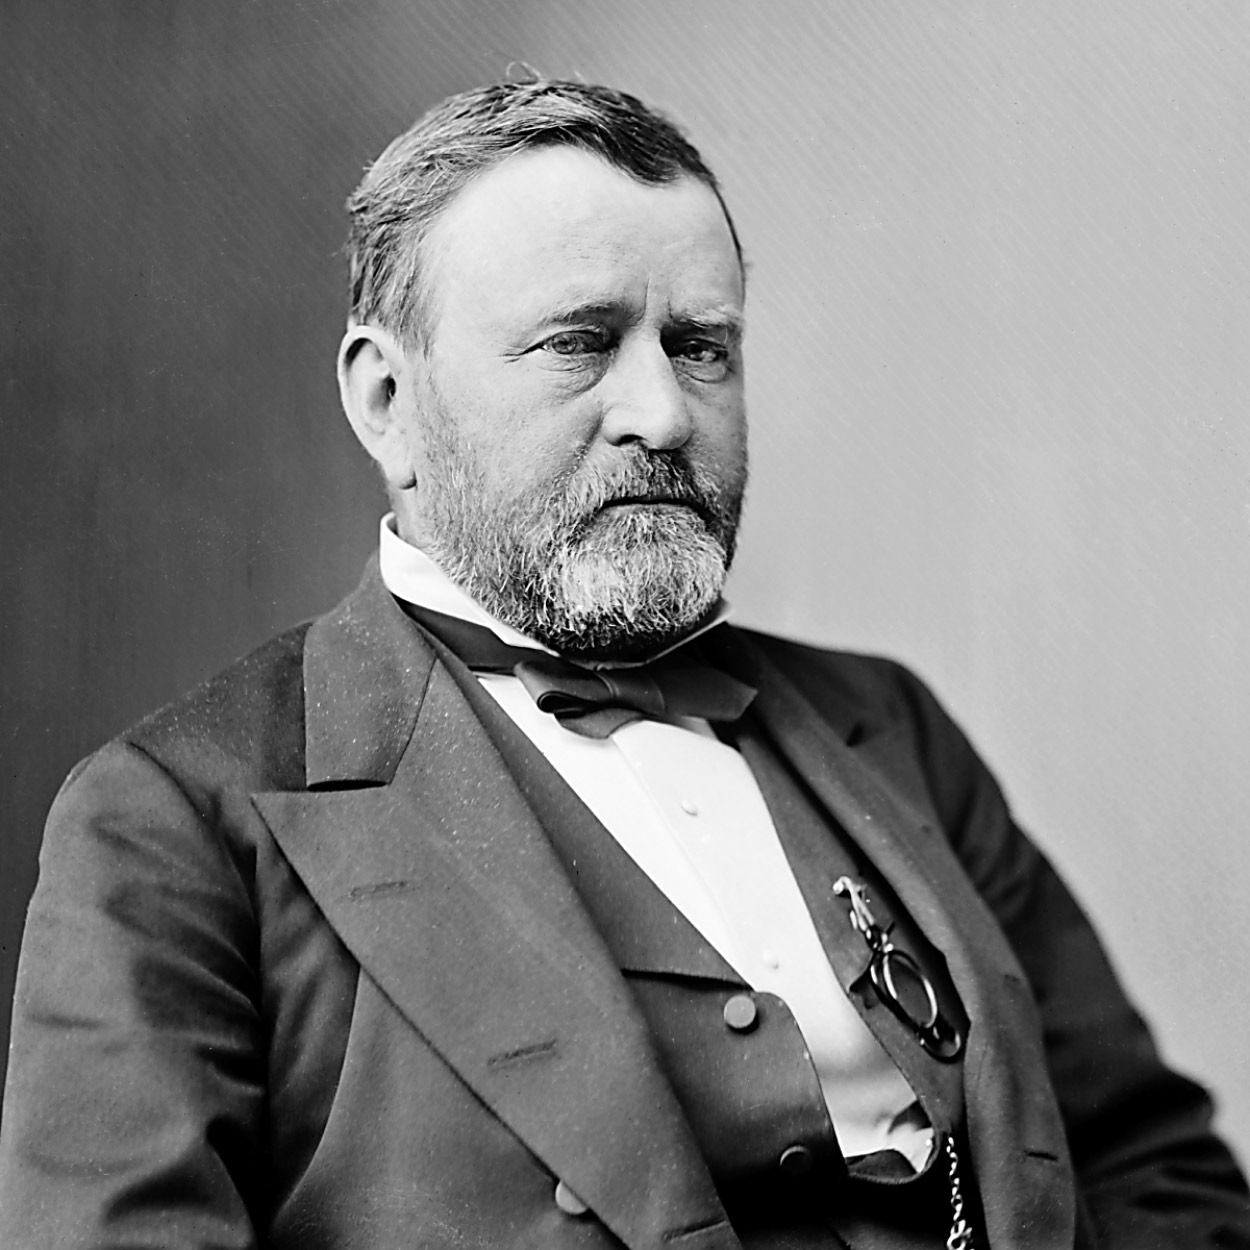 Portrait of Ulysses S. Grant, the 18th President of the United States